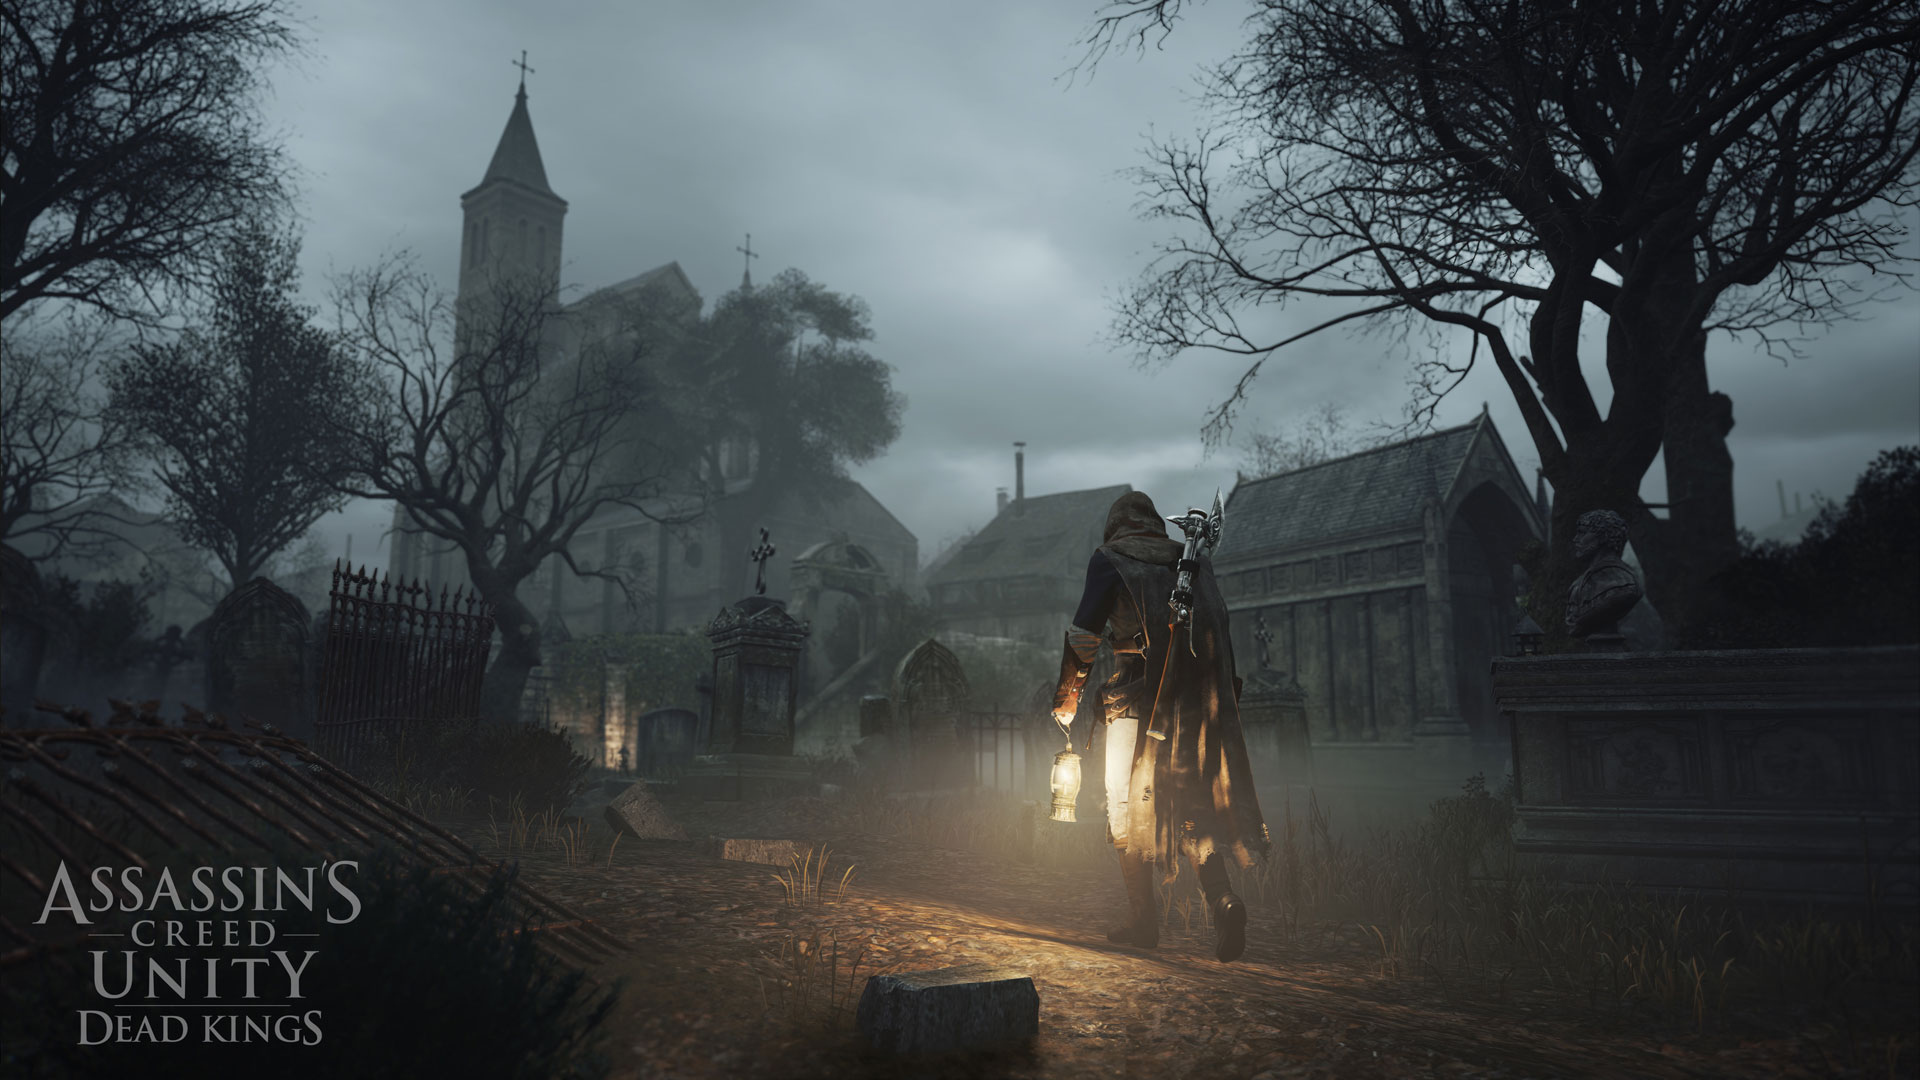 Assassin's Creed Unity is broken, so Ubisoft is giving players free DLC, season pass holders a free game